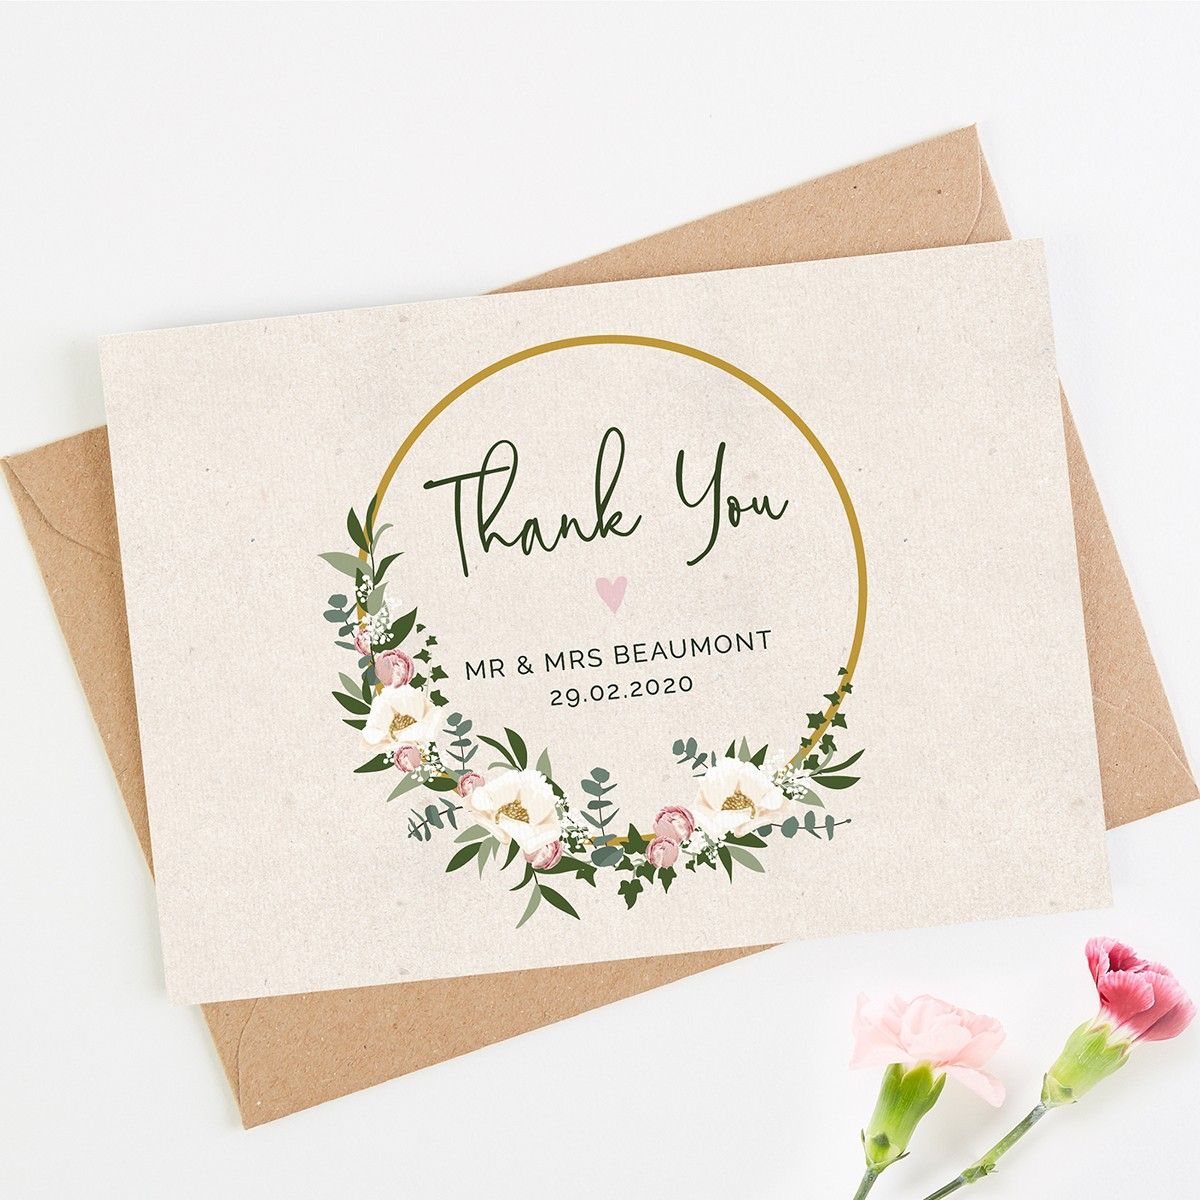 Wedding Thankyou Gifts: Floral Hoop Wedding Thank You Card